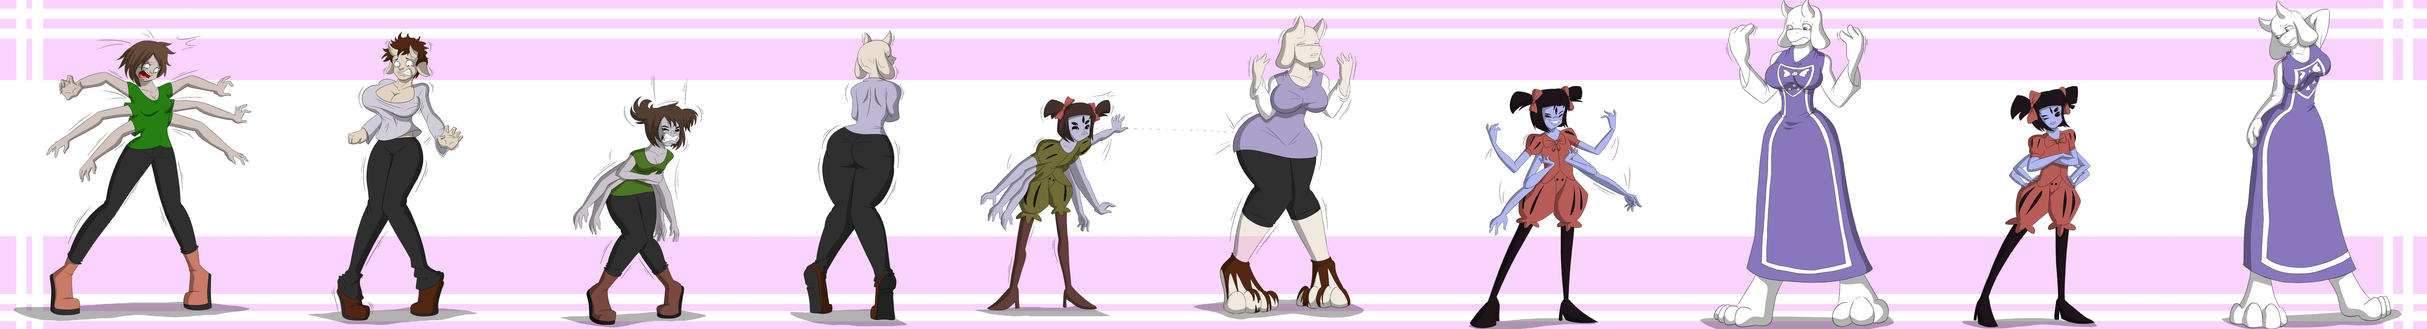 A Tall Tale Undertale Tg Tf Sequence By Tfsubmissions On Deviantart